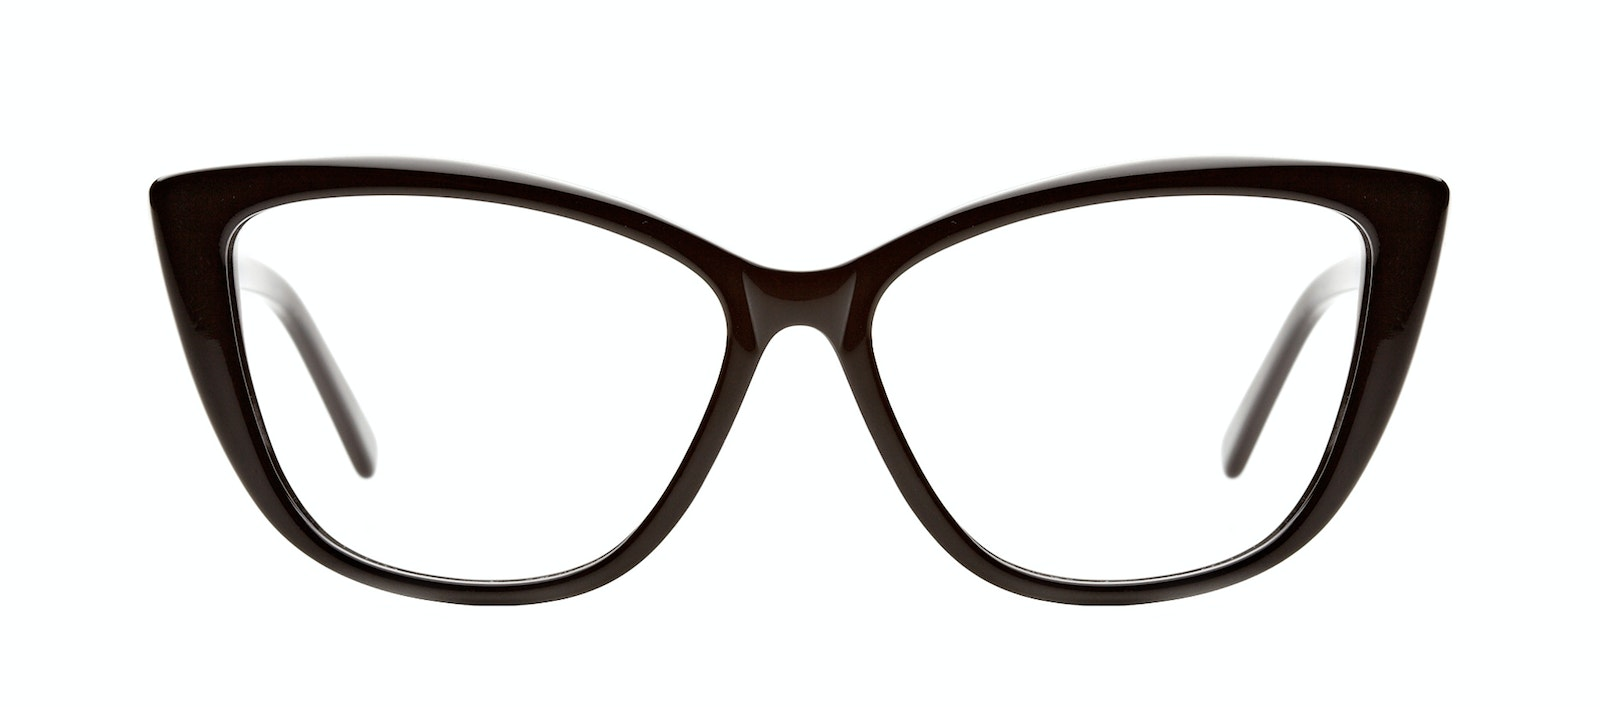 751fddcd98f2 Affordable Fashion Glasses Cat Eye Daring Cateye Eyeglasses Women Dolled Up  Black Front